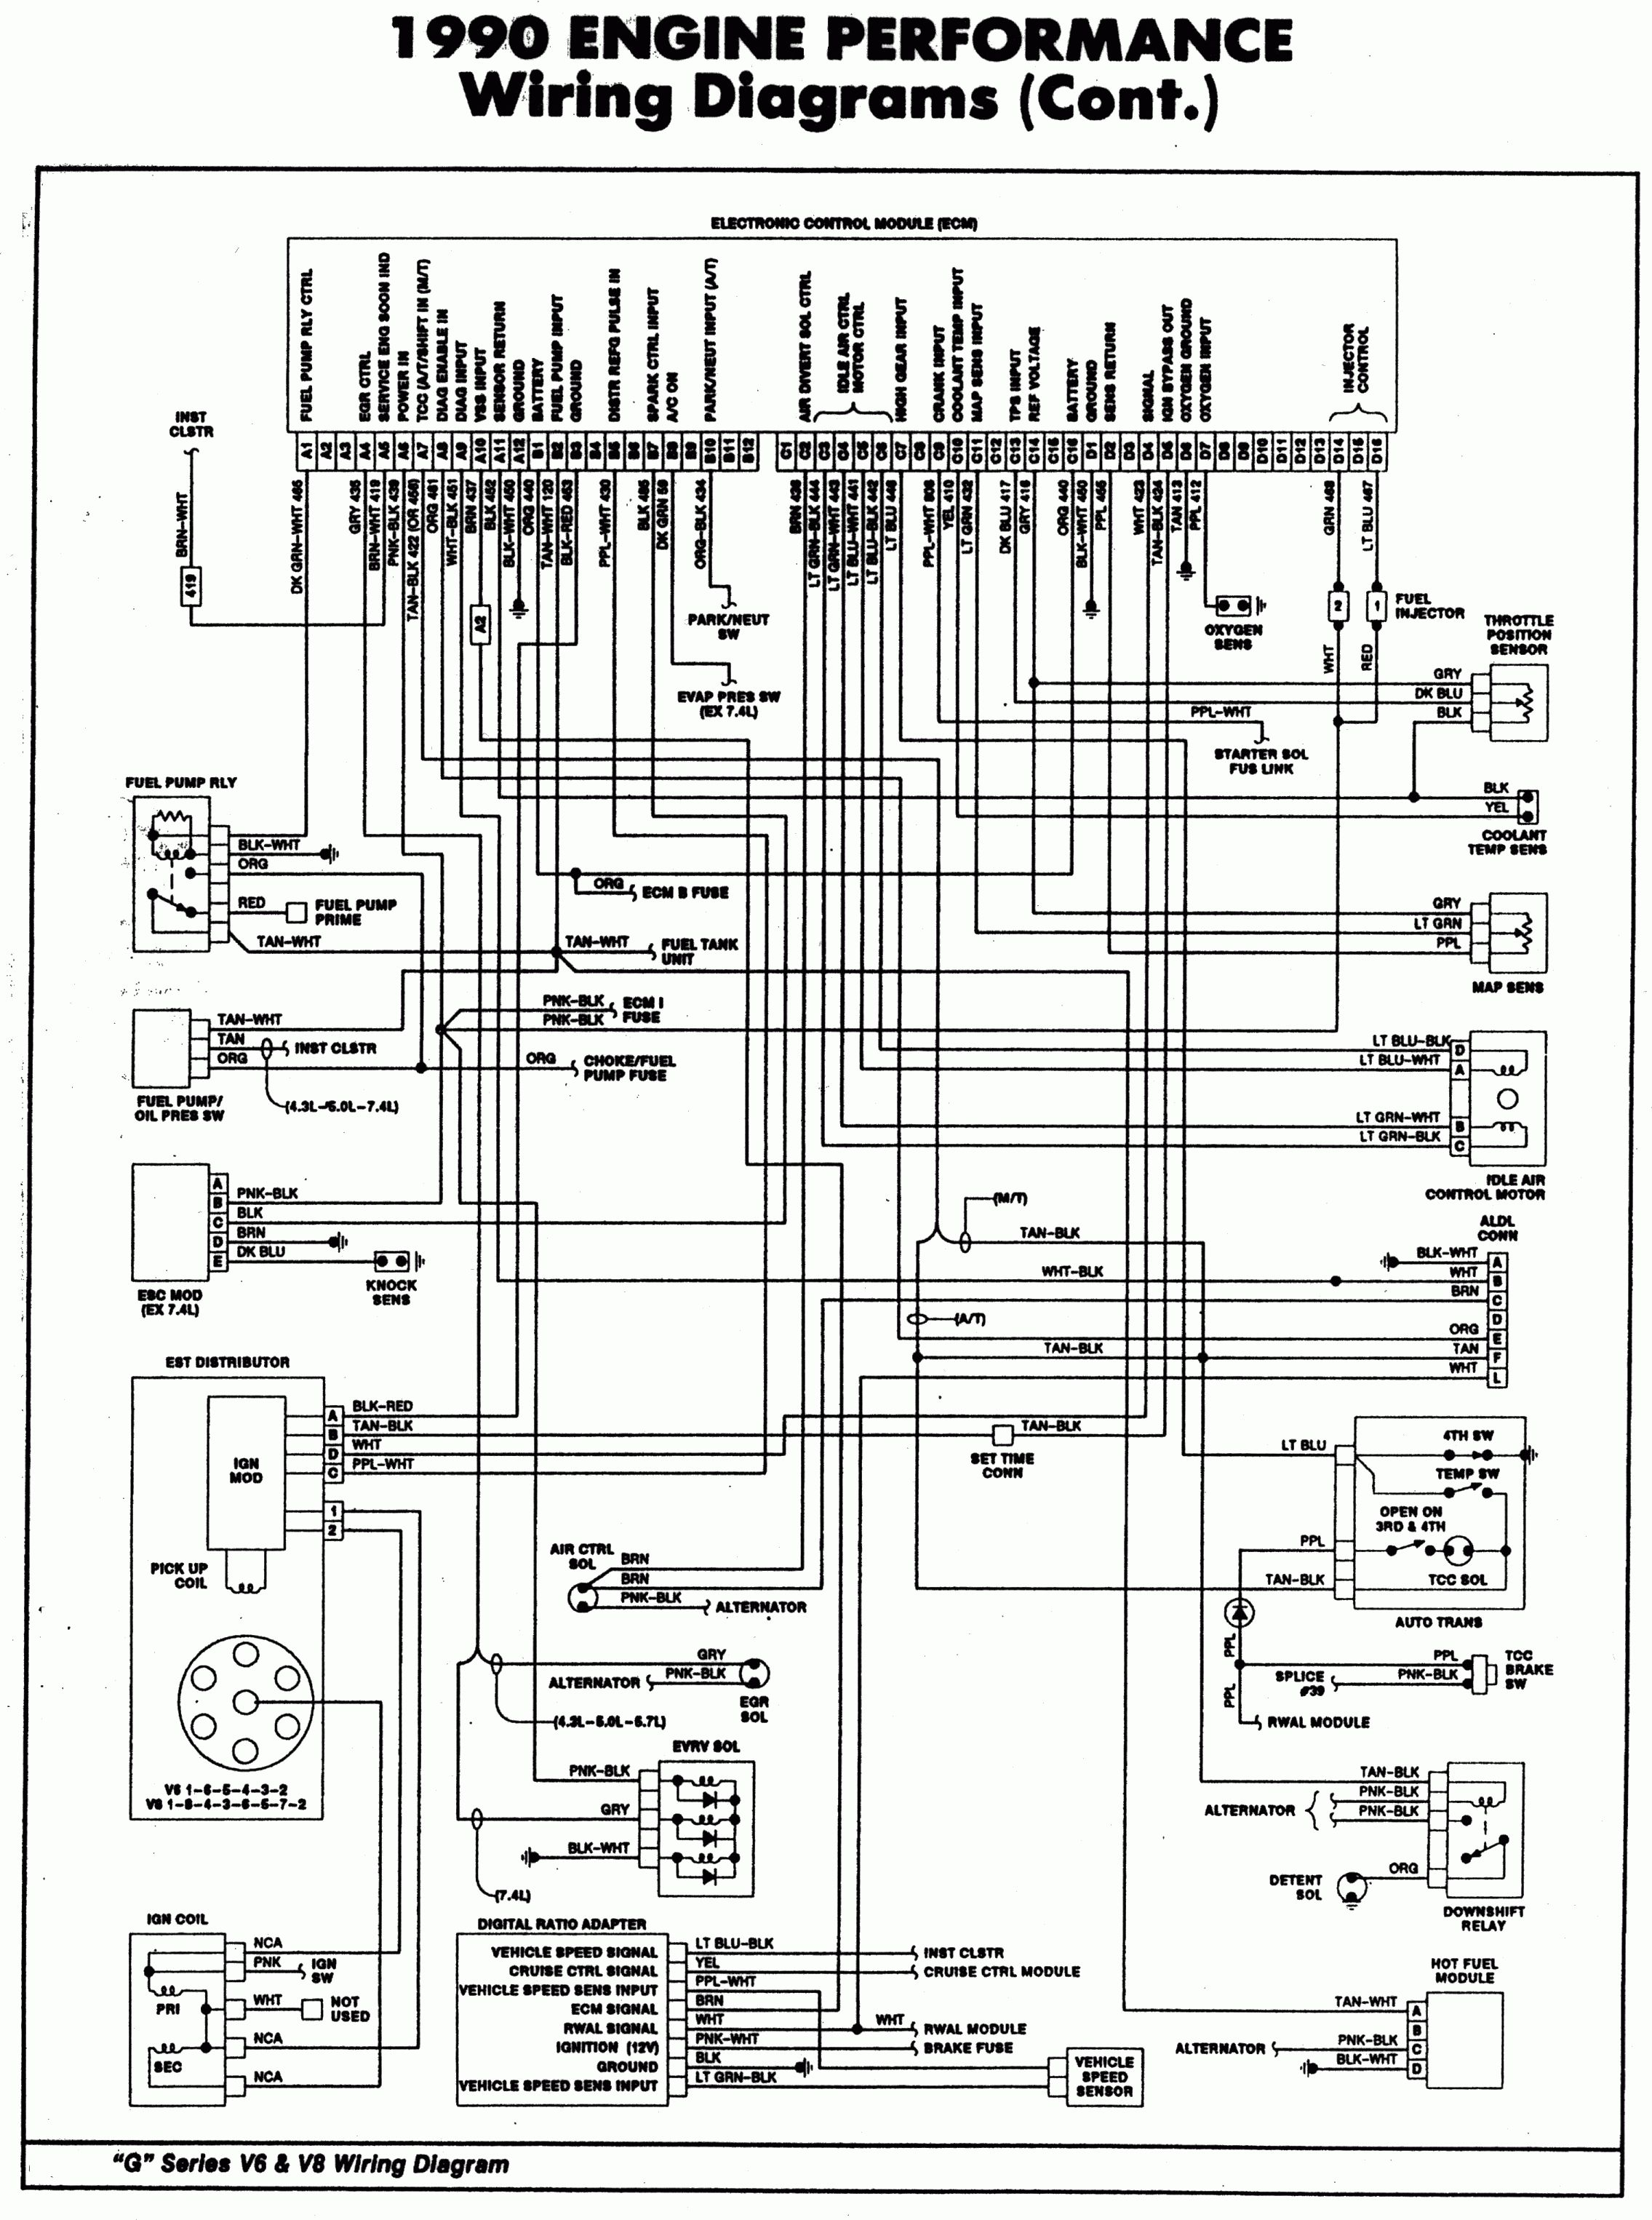 Marvelous 1990 Engine Performance Wiring Diagram With Control Module And Wiring Digital Resources Minagakbiperorg